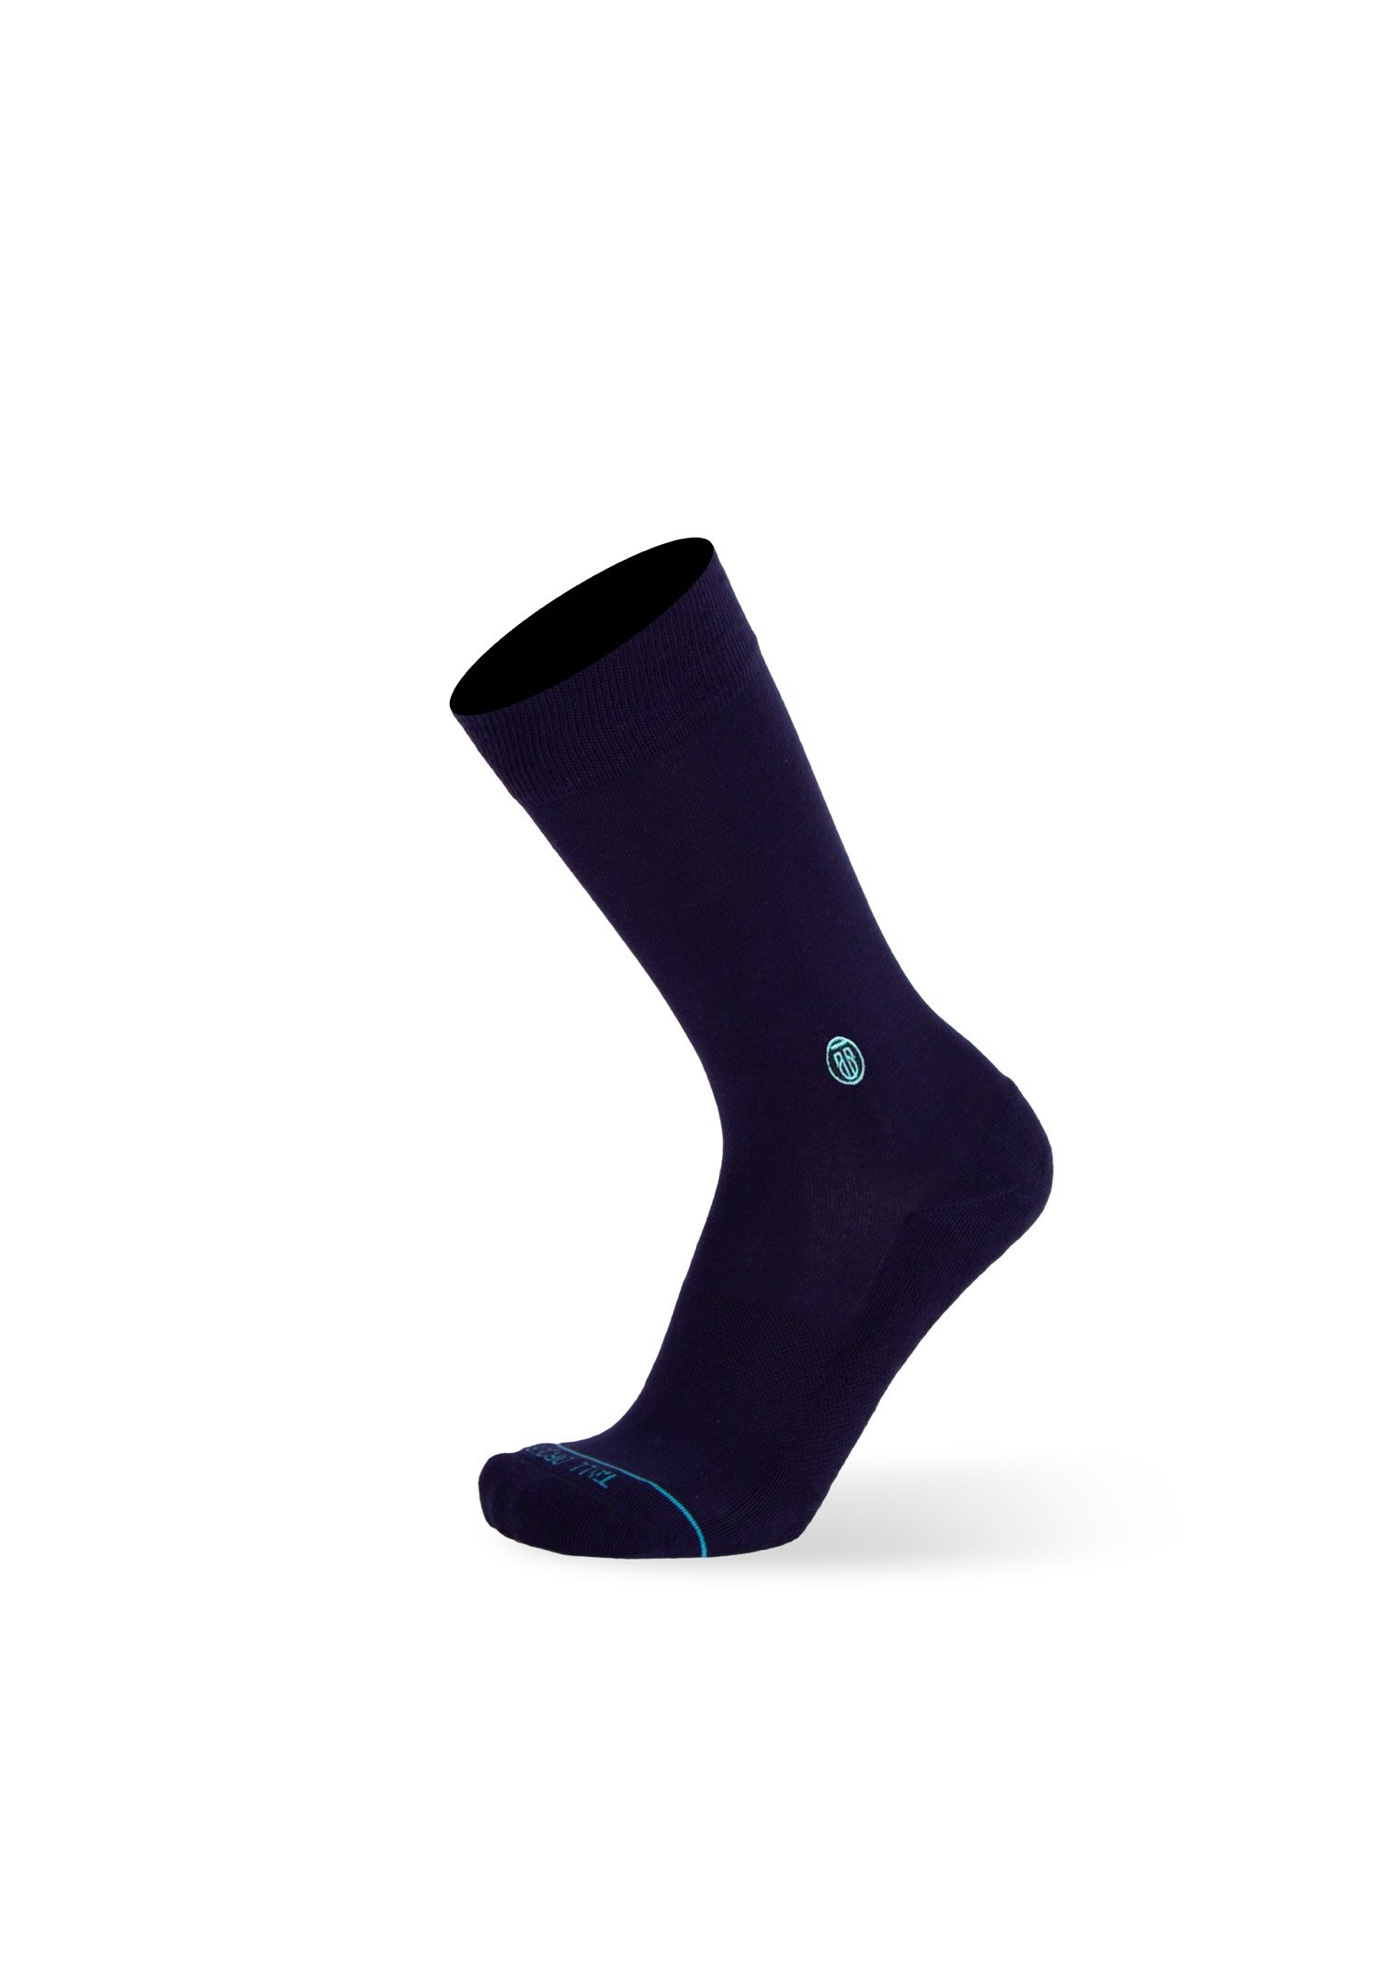 The Solid Navy Socks,